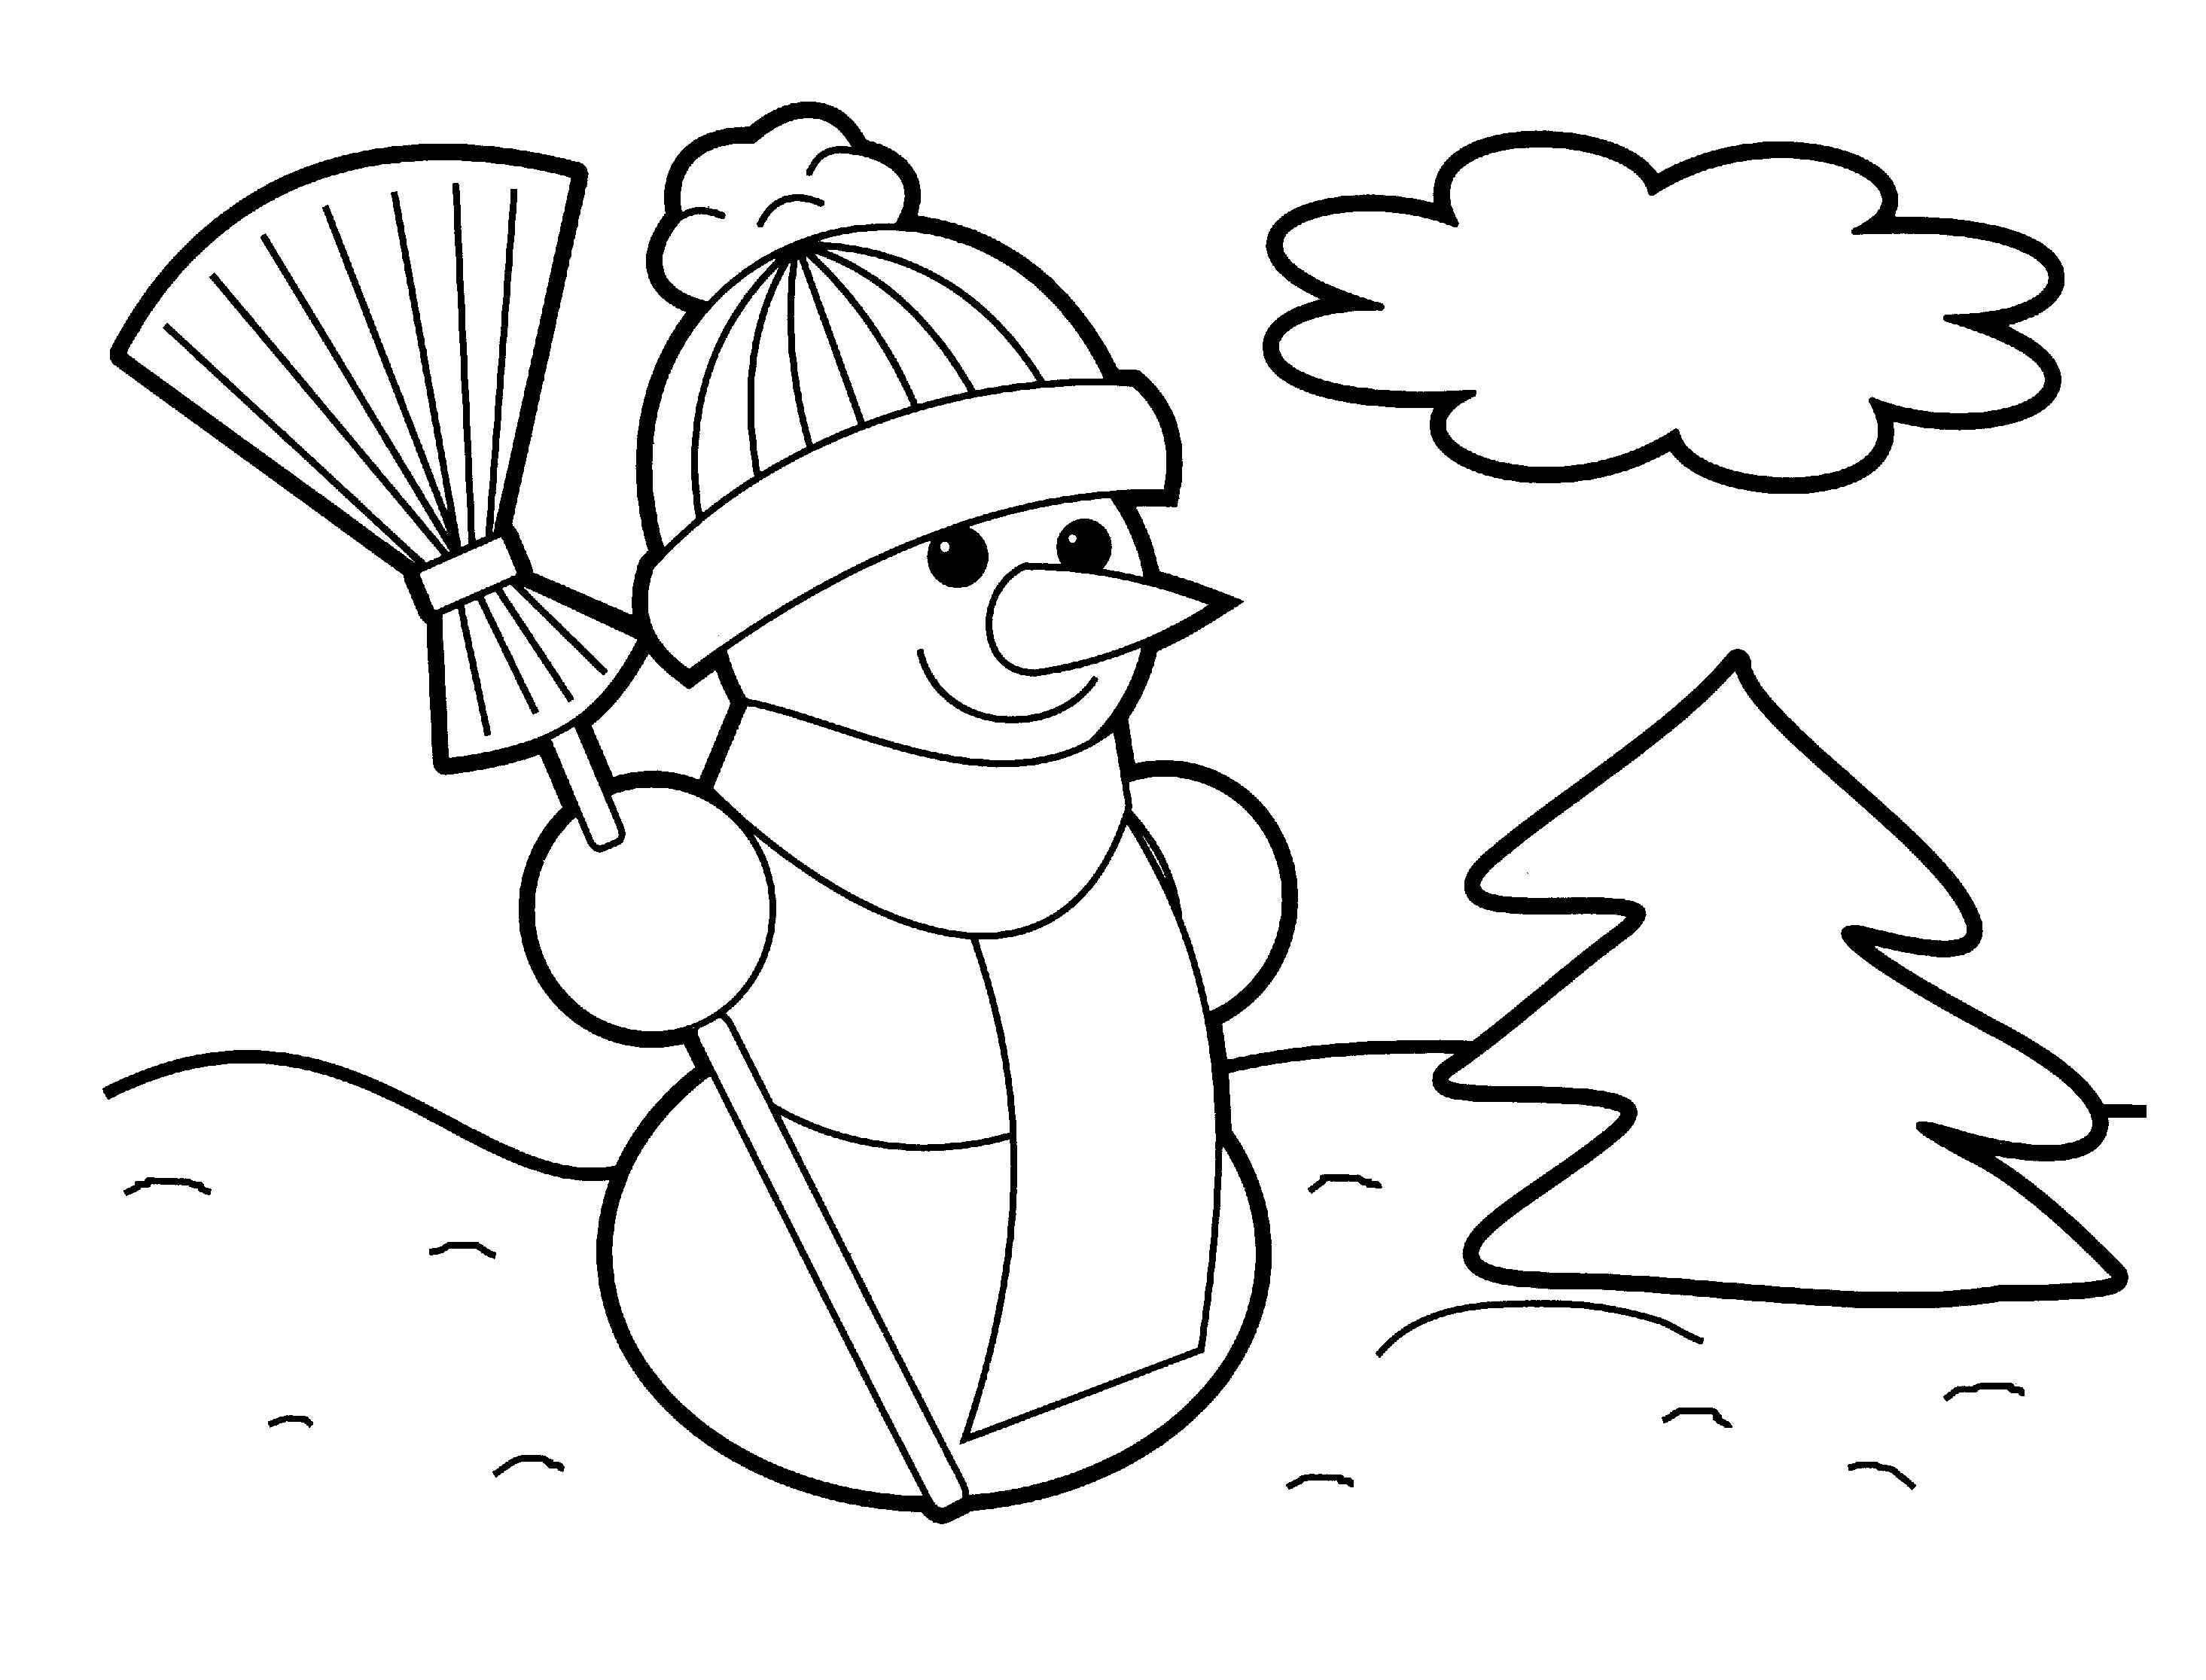 Newborn Baby Coloring Pages  Collection 11j - To print for your project